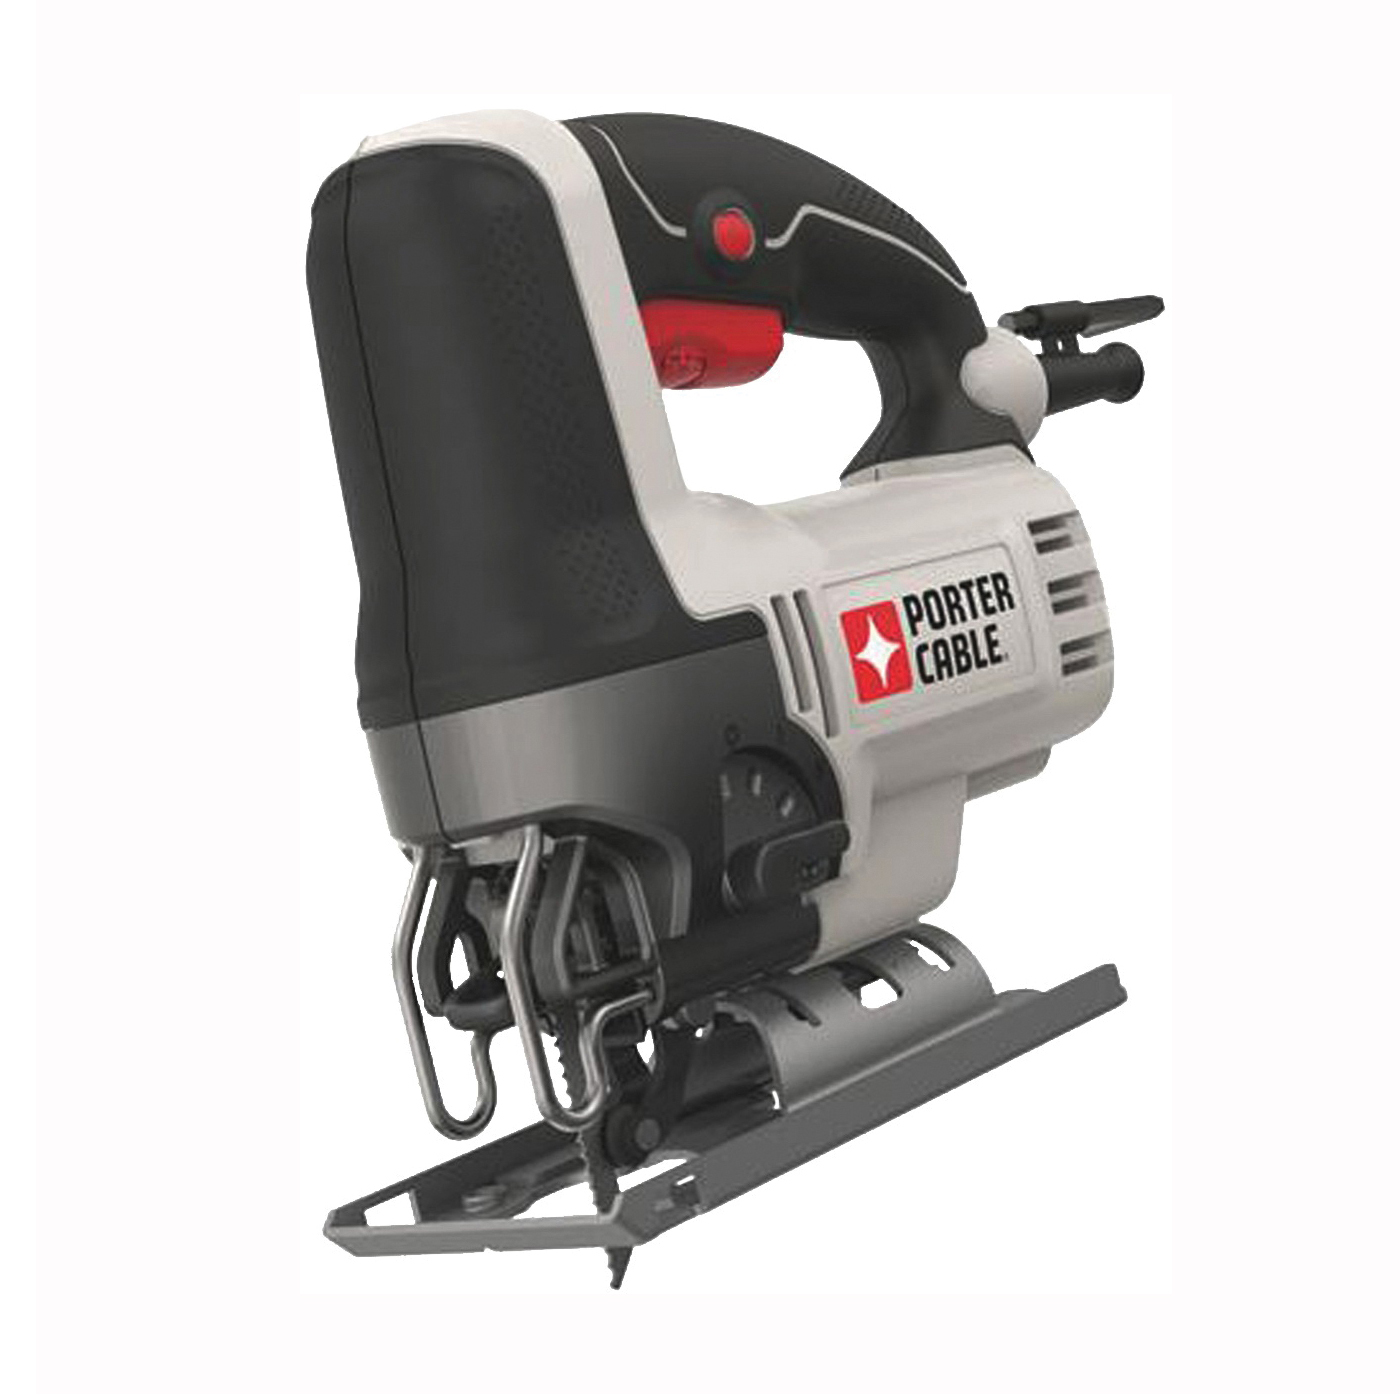 Picture of PORTER-CABLE PCE345 Jig Saw, 120 V, 6 A, 0.813 in Cutting Capacity, 13/16 in L Stroke, 3200 spm SPM